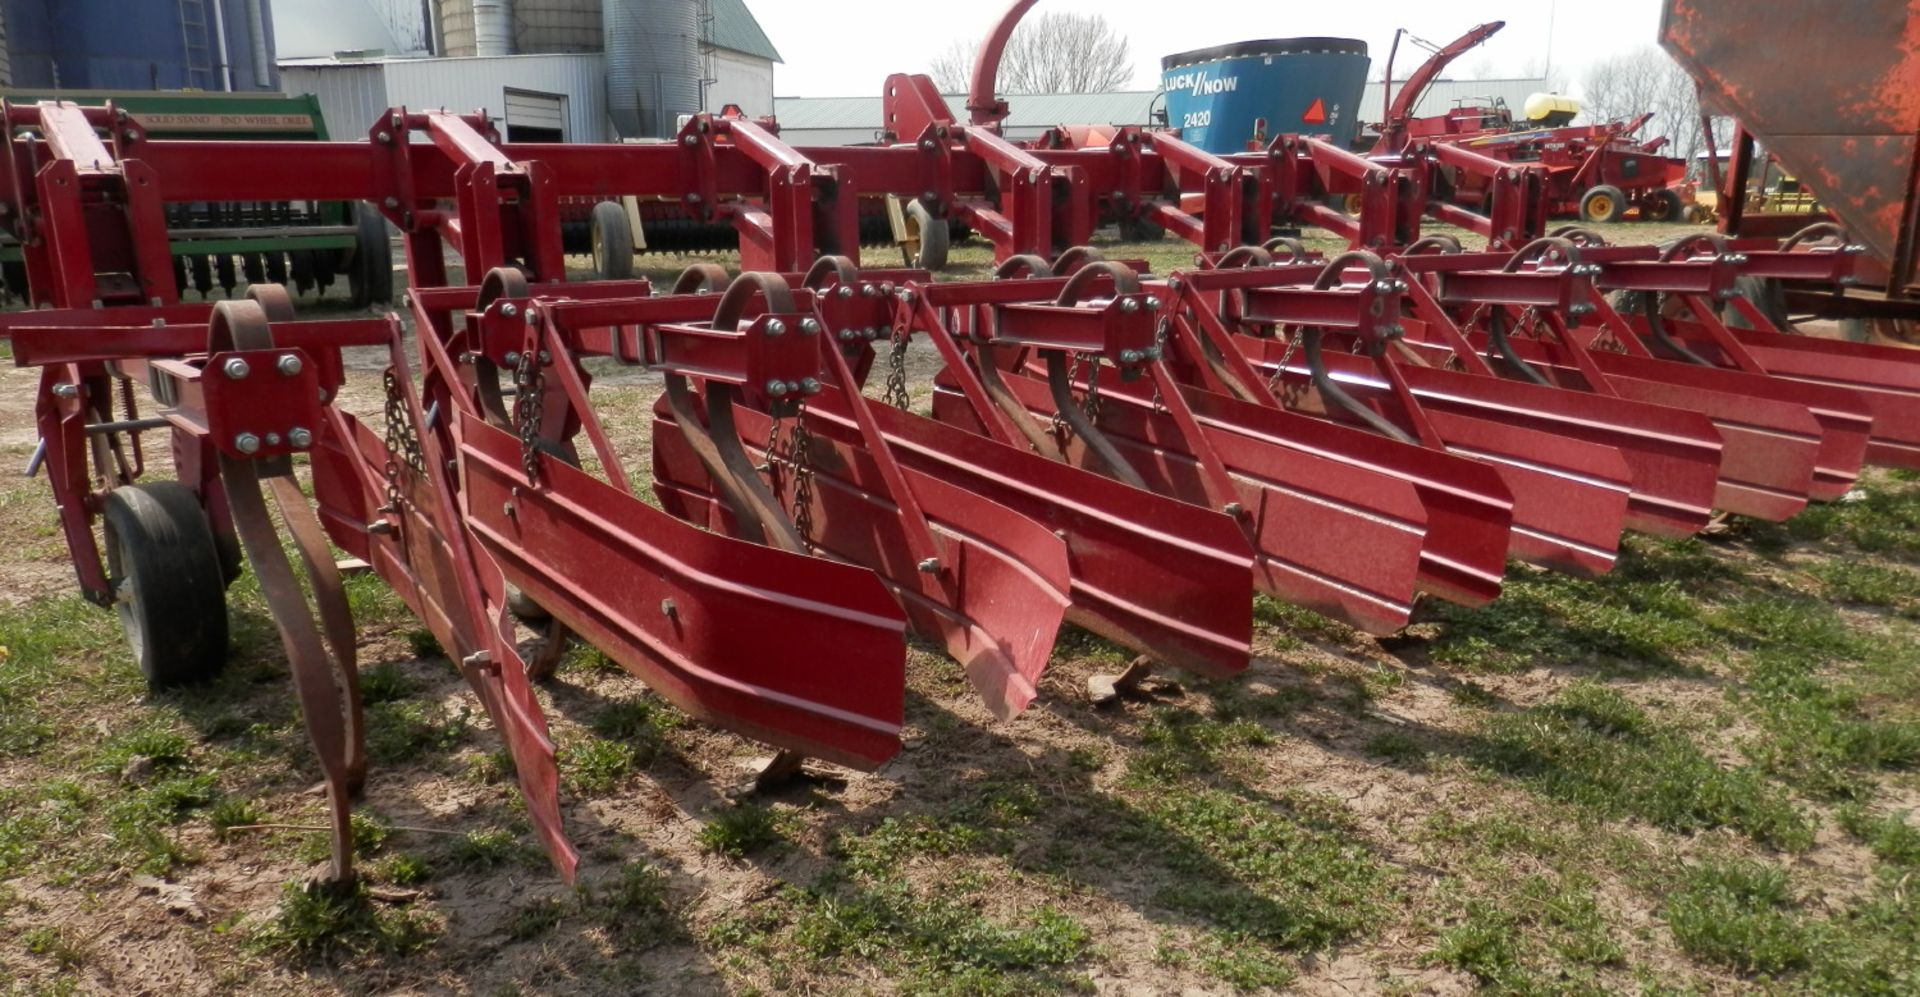 MILLER 6R HI CLEARANCE ROW CROP CULTIVATOR - Image 3 of 3